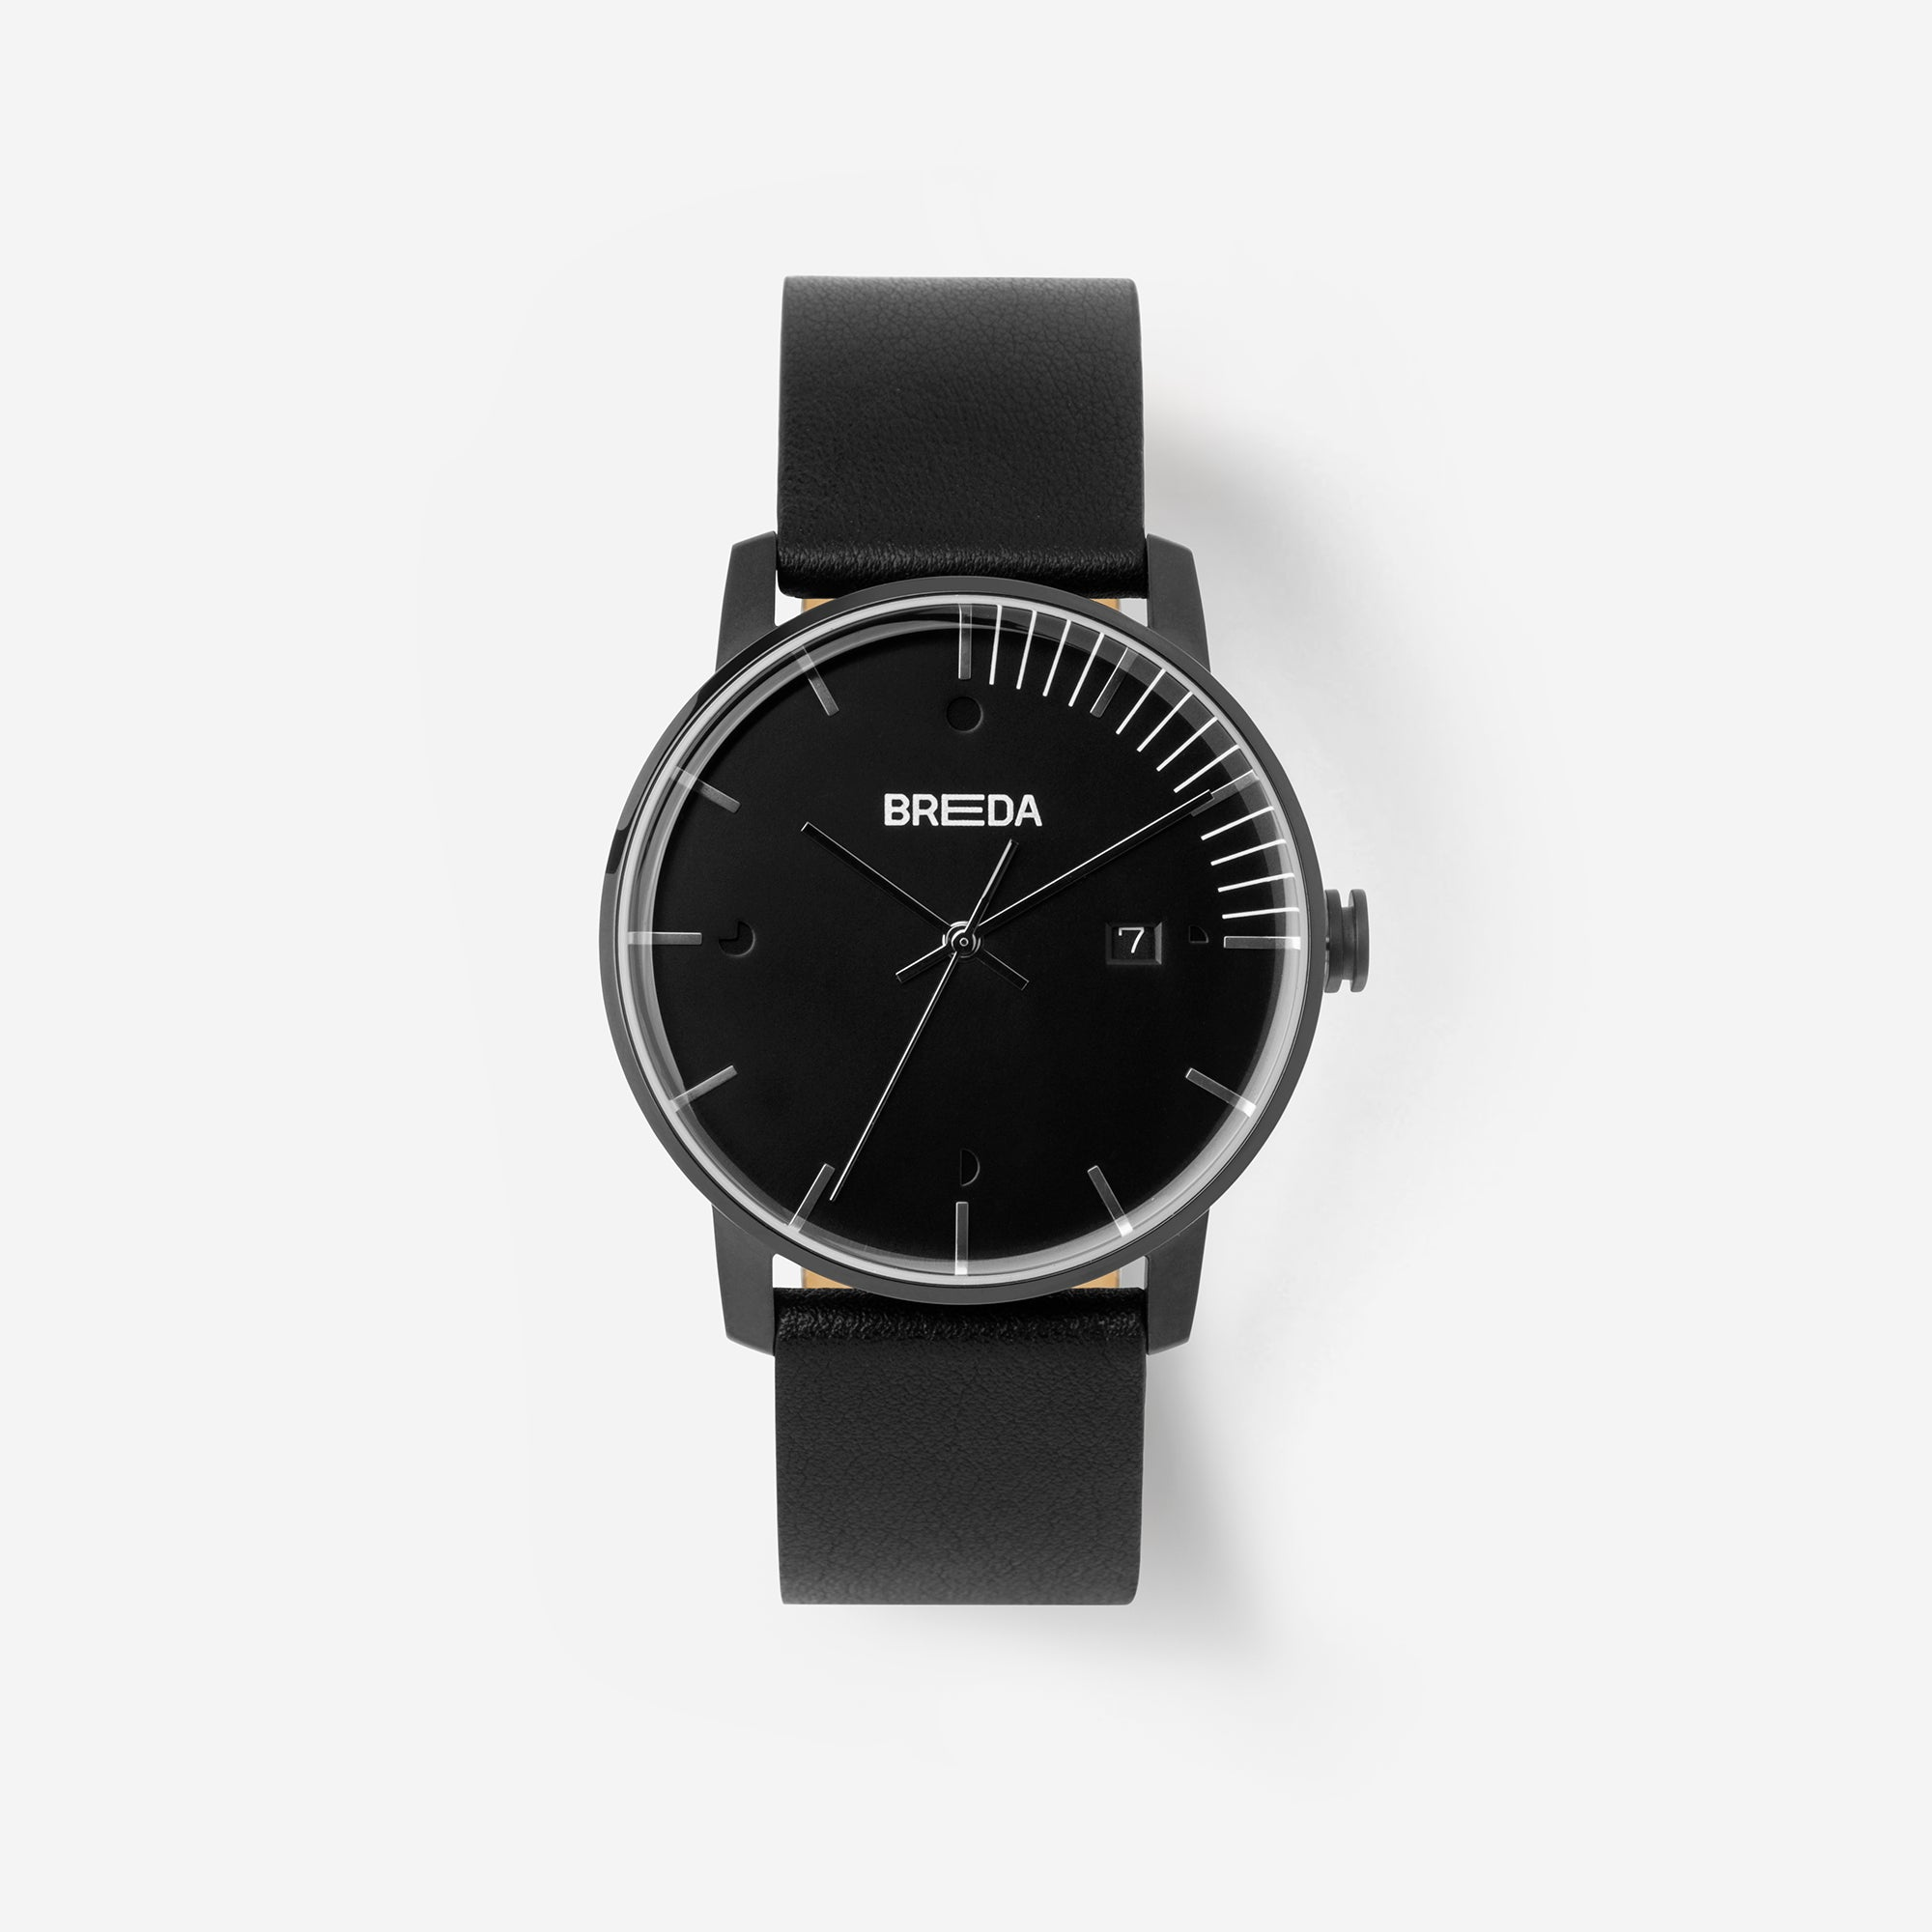 //cdn.shopify.com/s/files/1/0879/6650/products/breda-phase-9000f-black-black-watch-front_da34775d-0b26-40db-8314-4d0656a37774_1024x1024.jpg?v=1543262610